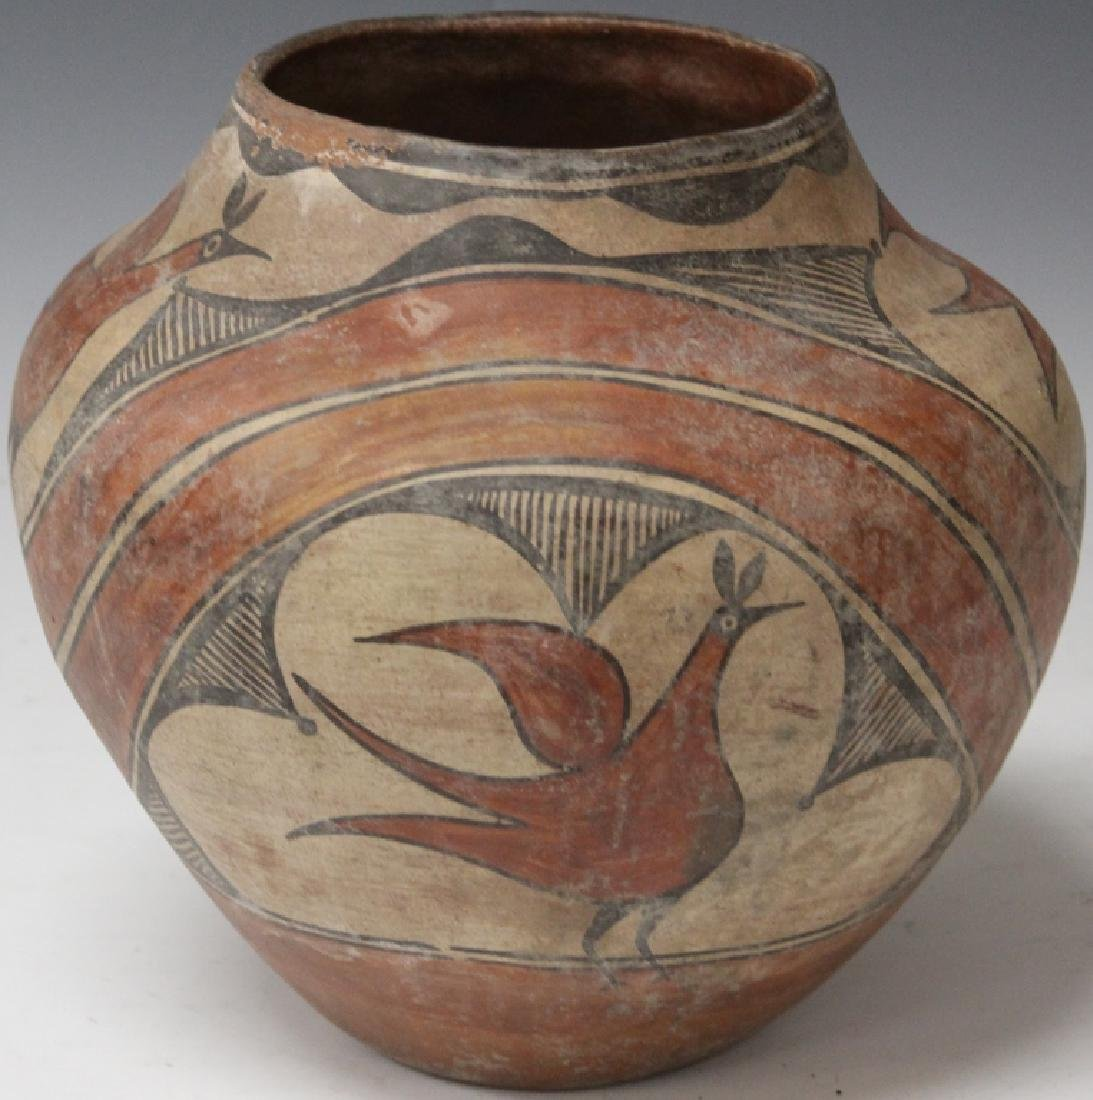 POLYCHROME NATIVE AMERICAN POT, C. 1939 - 4